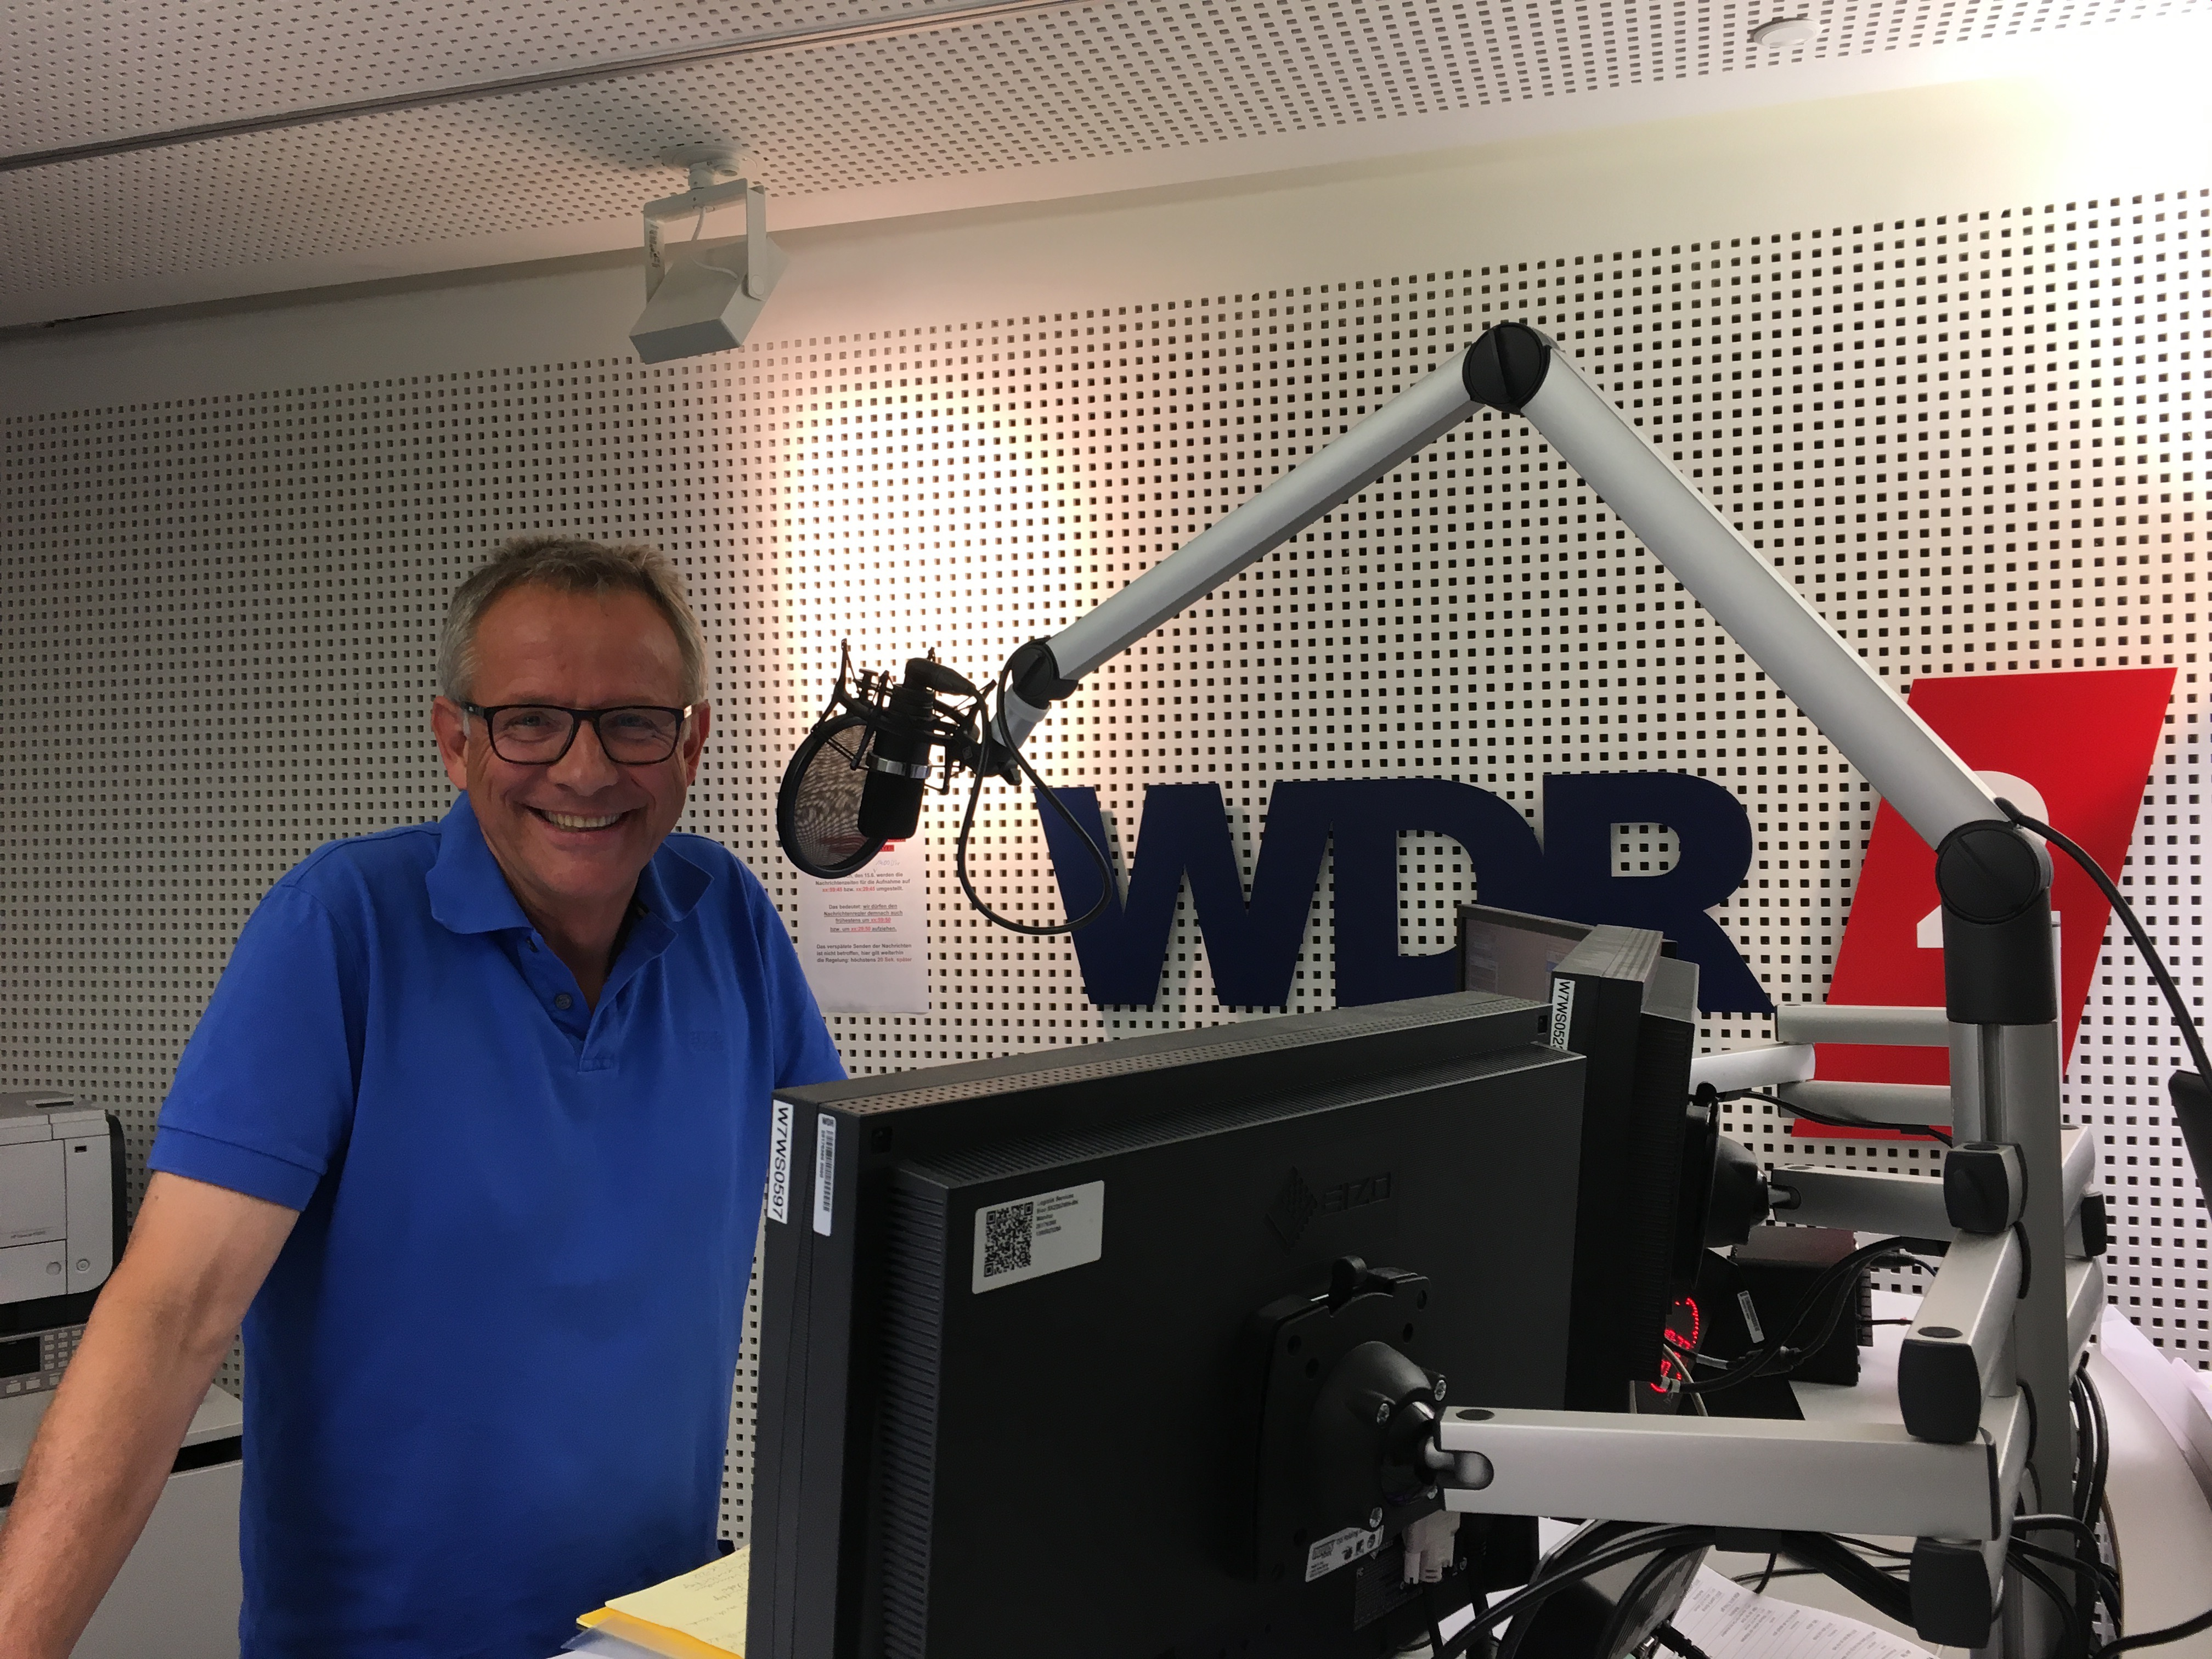 Stauinfo Wdr 2